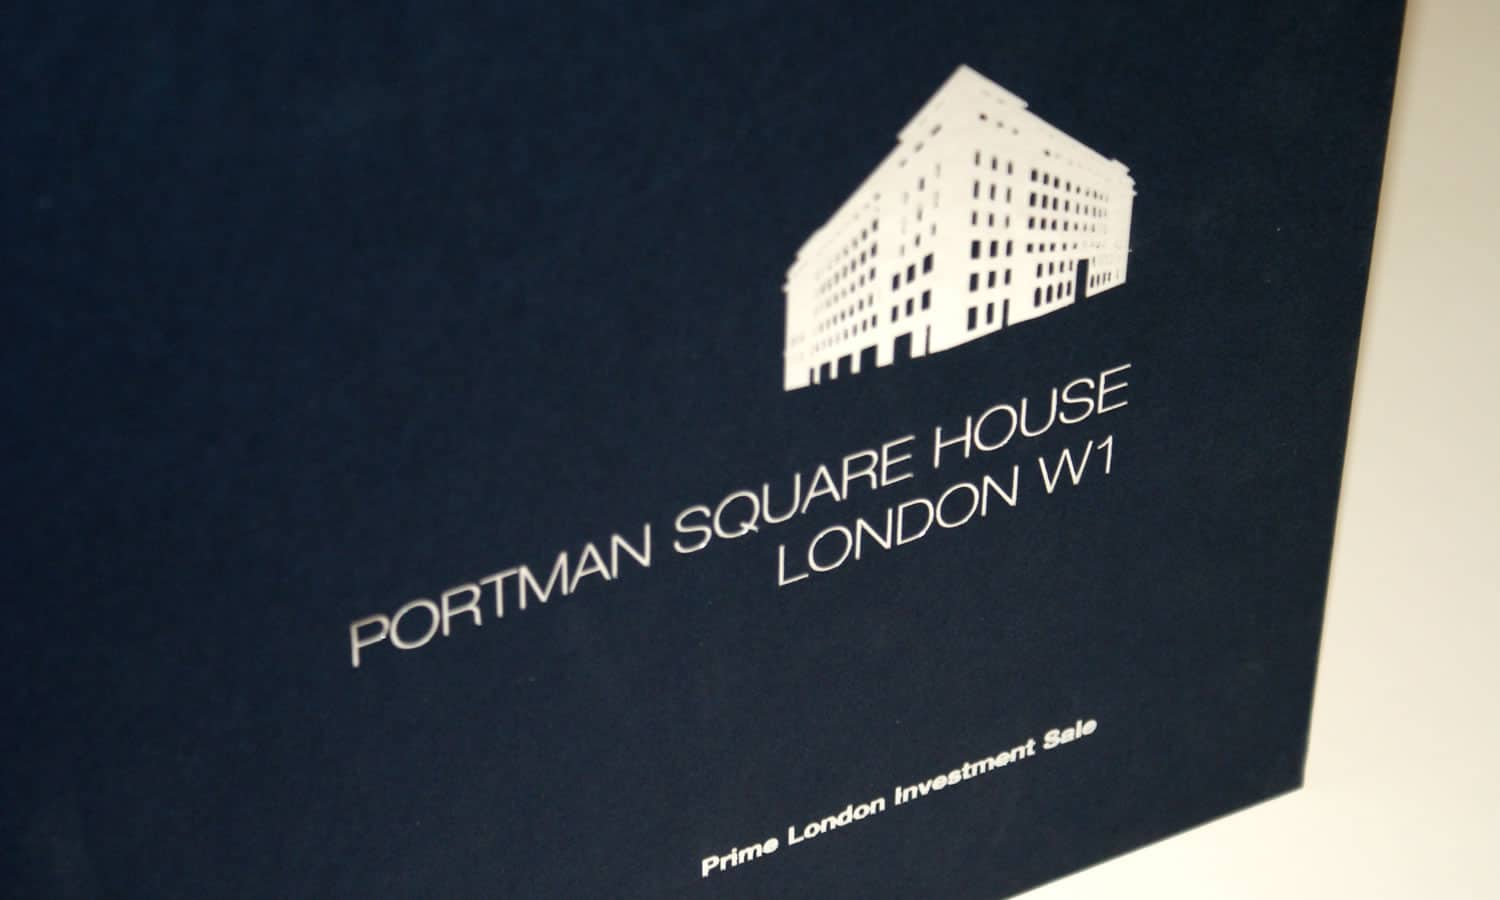 Portman Square House, London W1